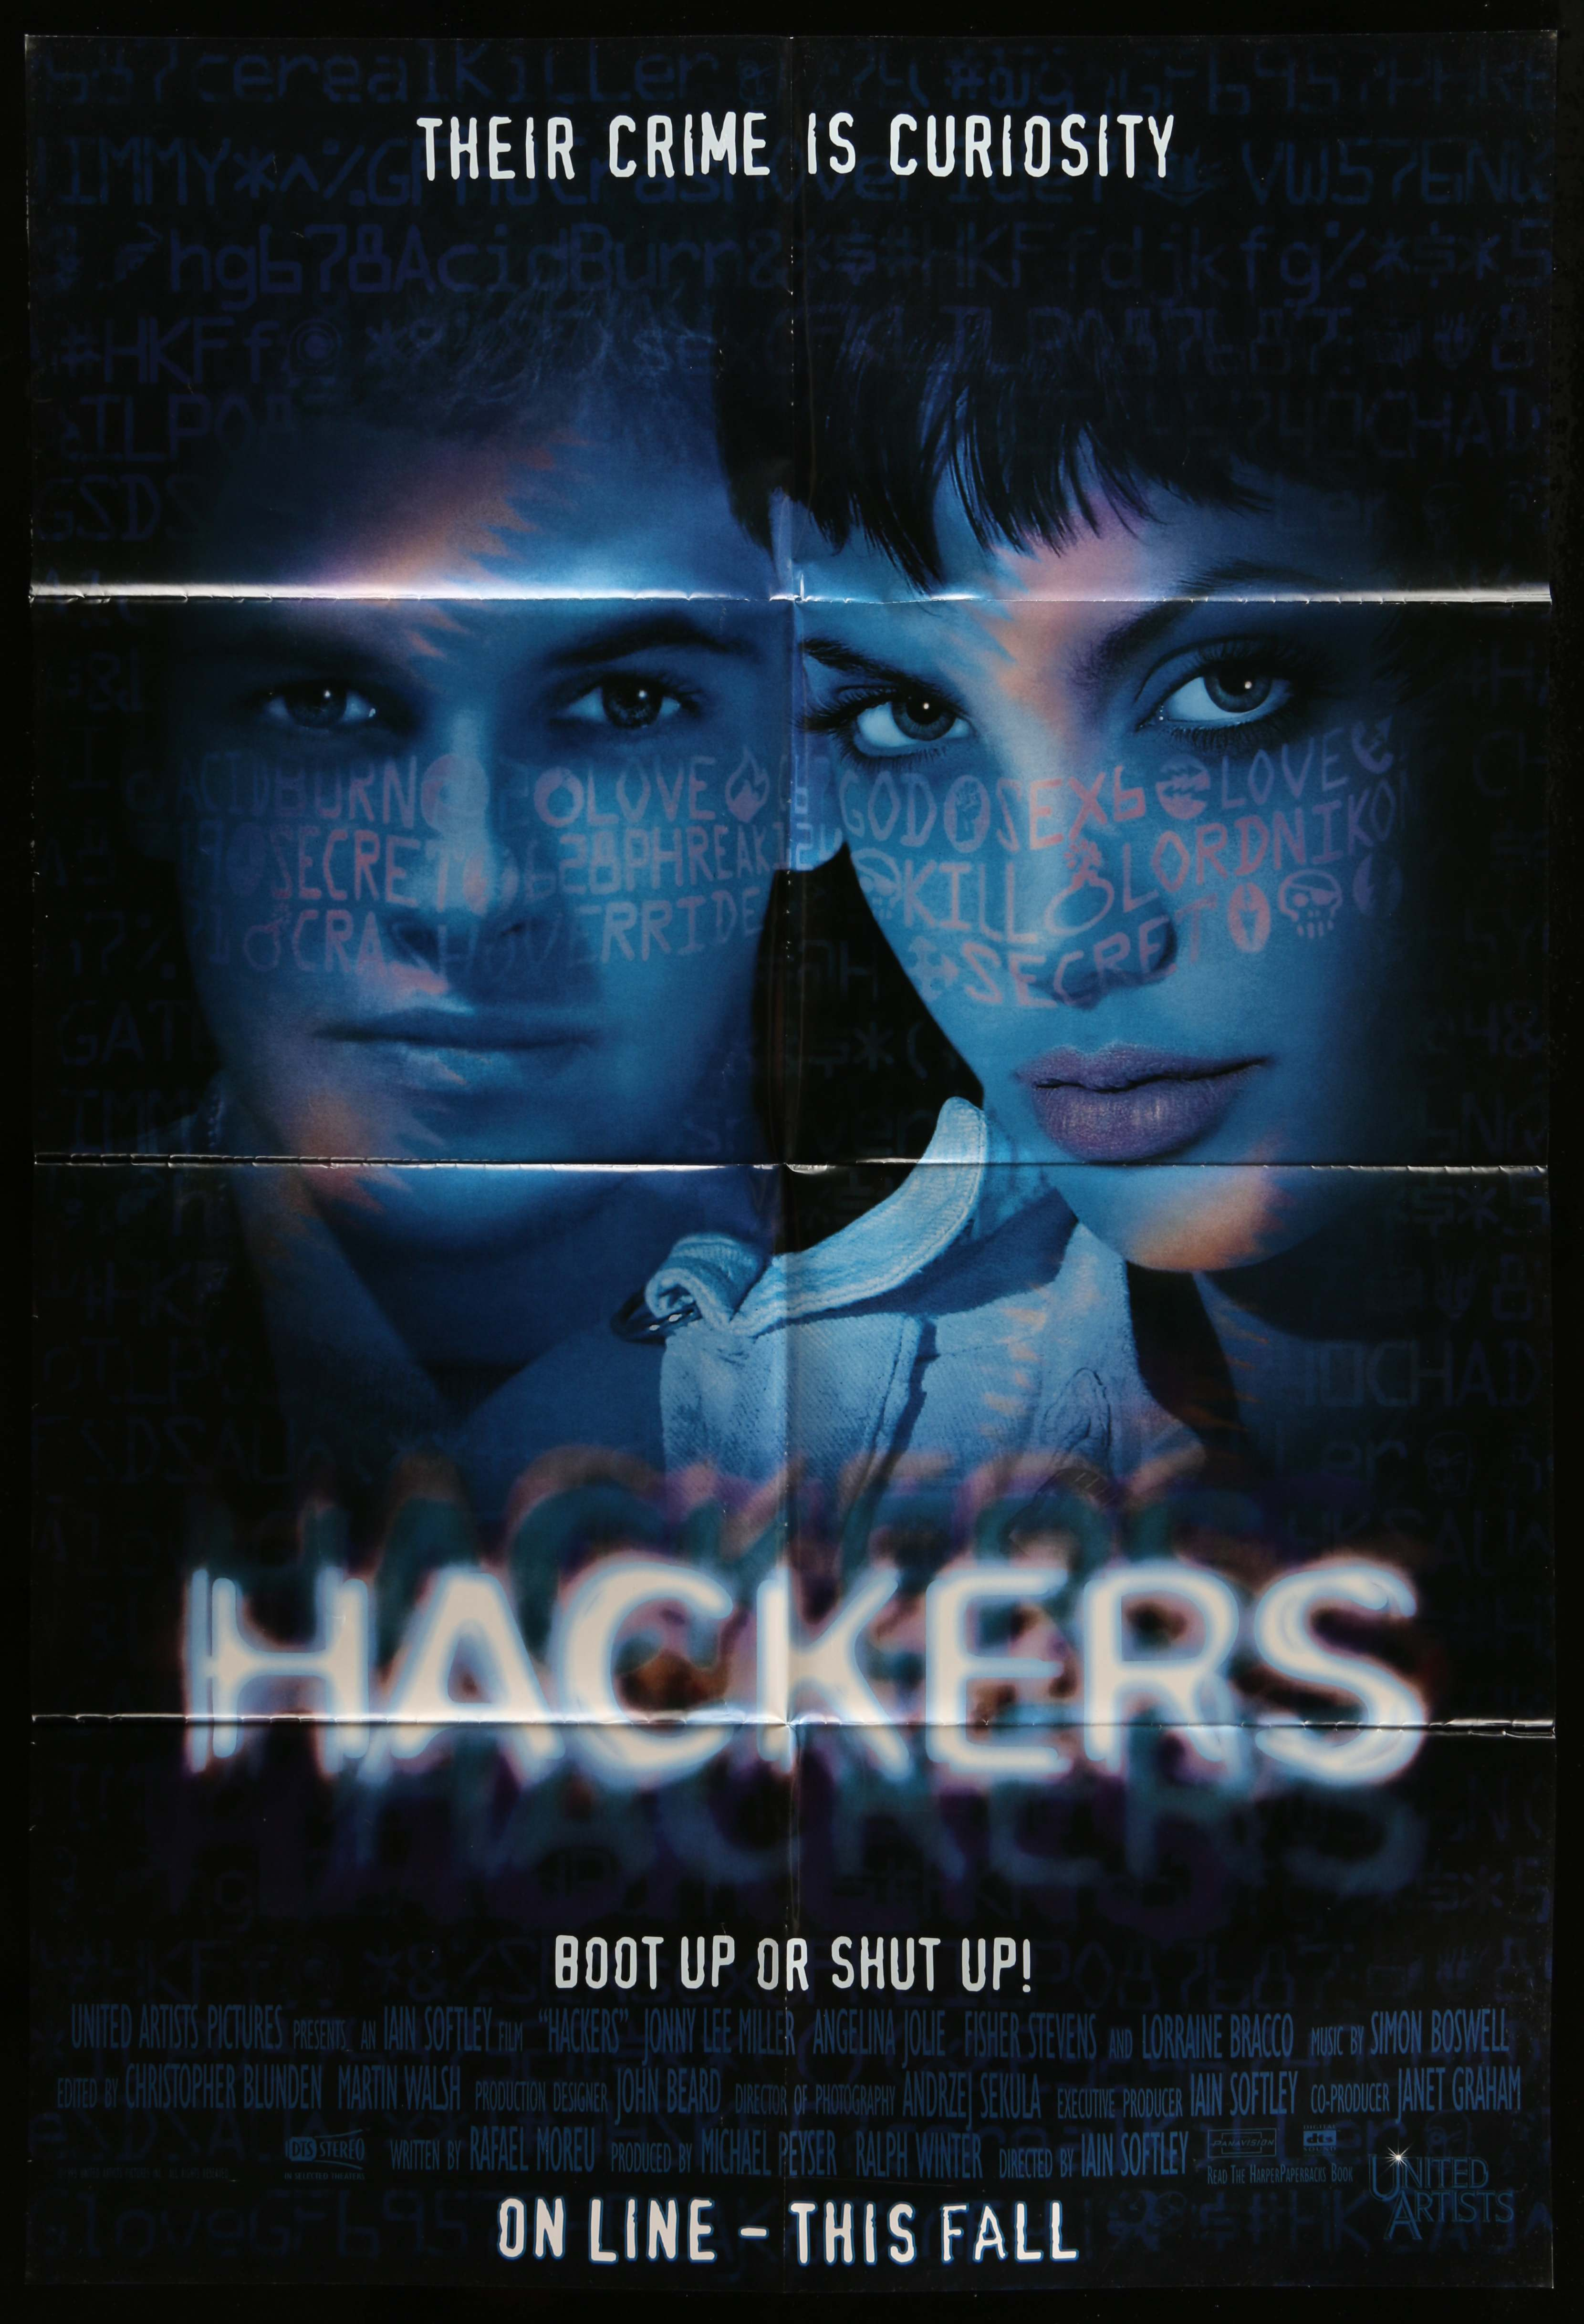 hackers-movie-poster-29x40-in-1995-iain-